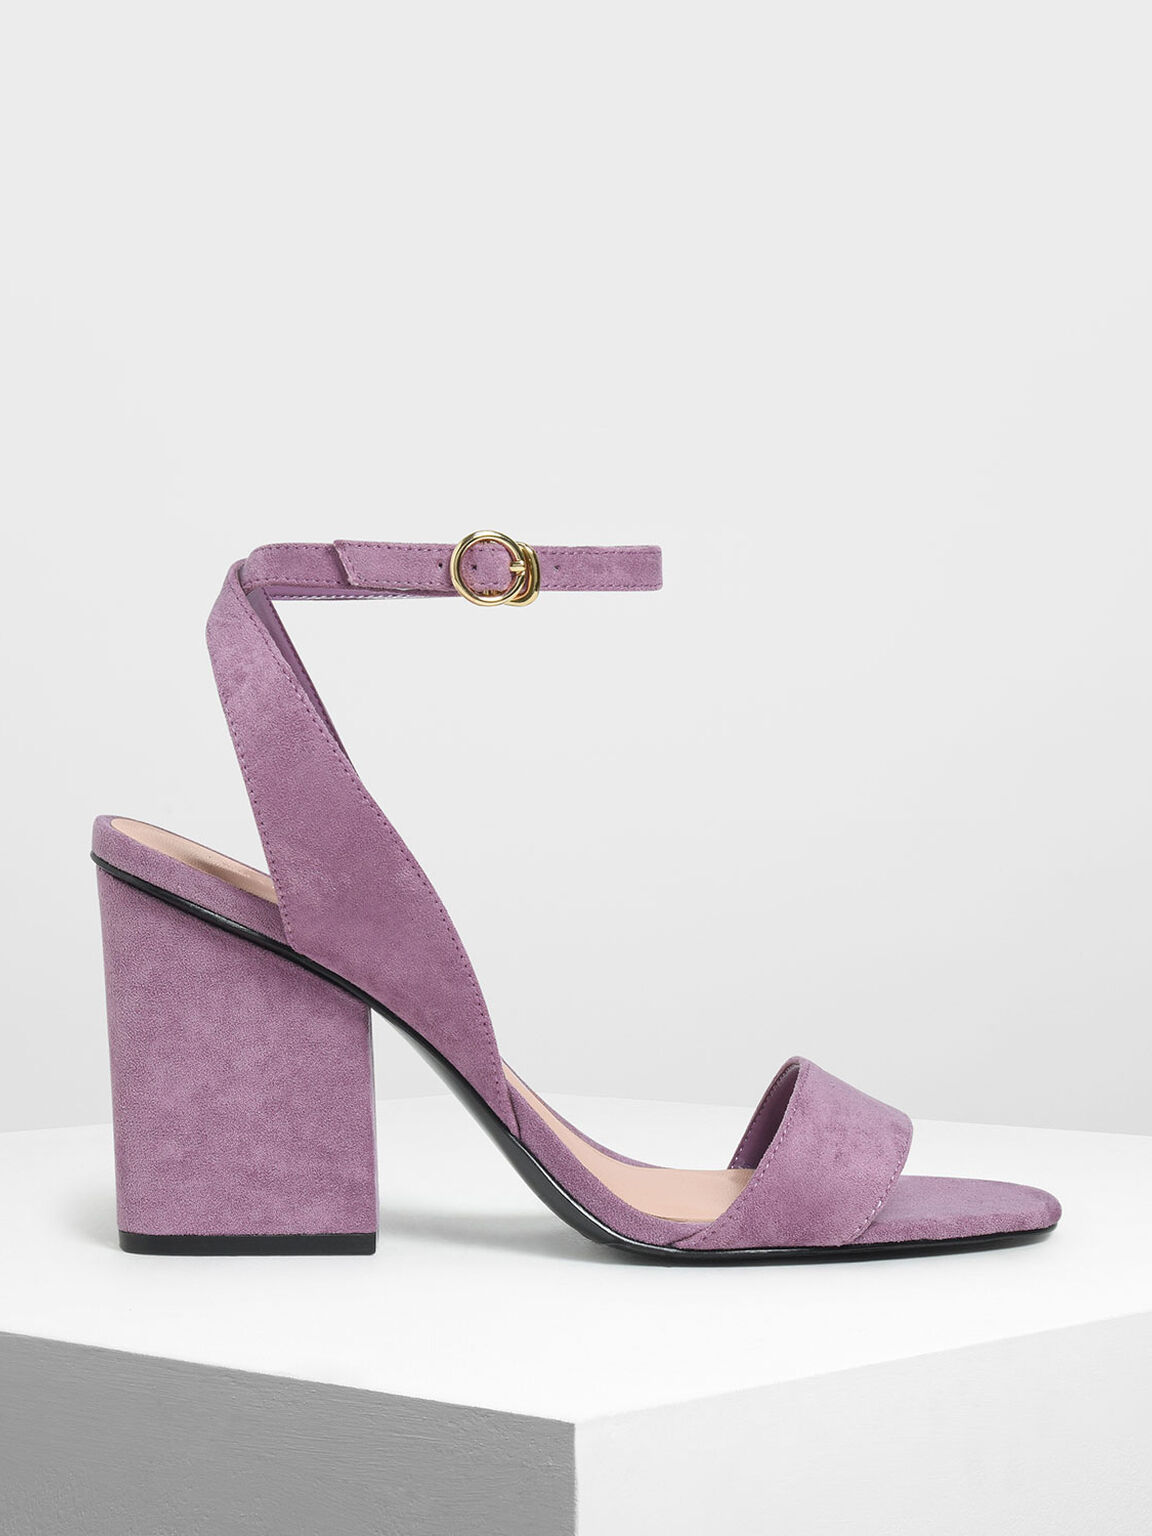 Ankle Strap Block Heel Sandals, Lilac, hi-res